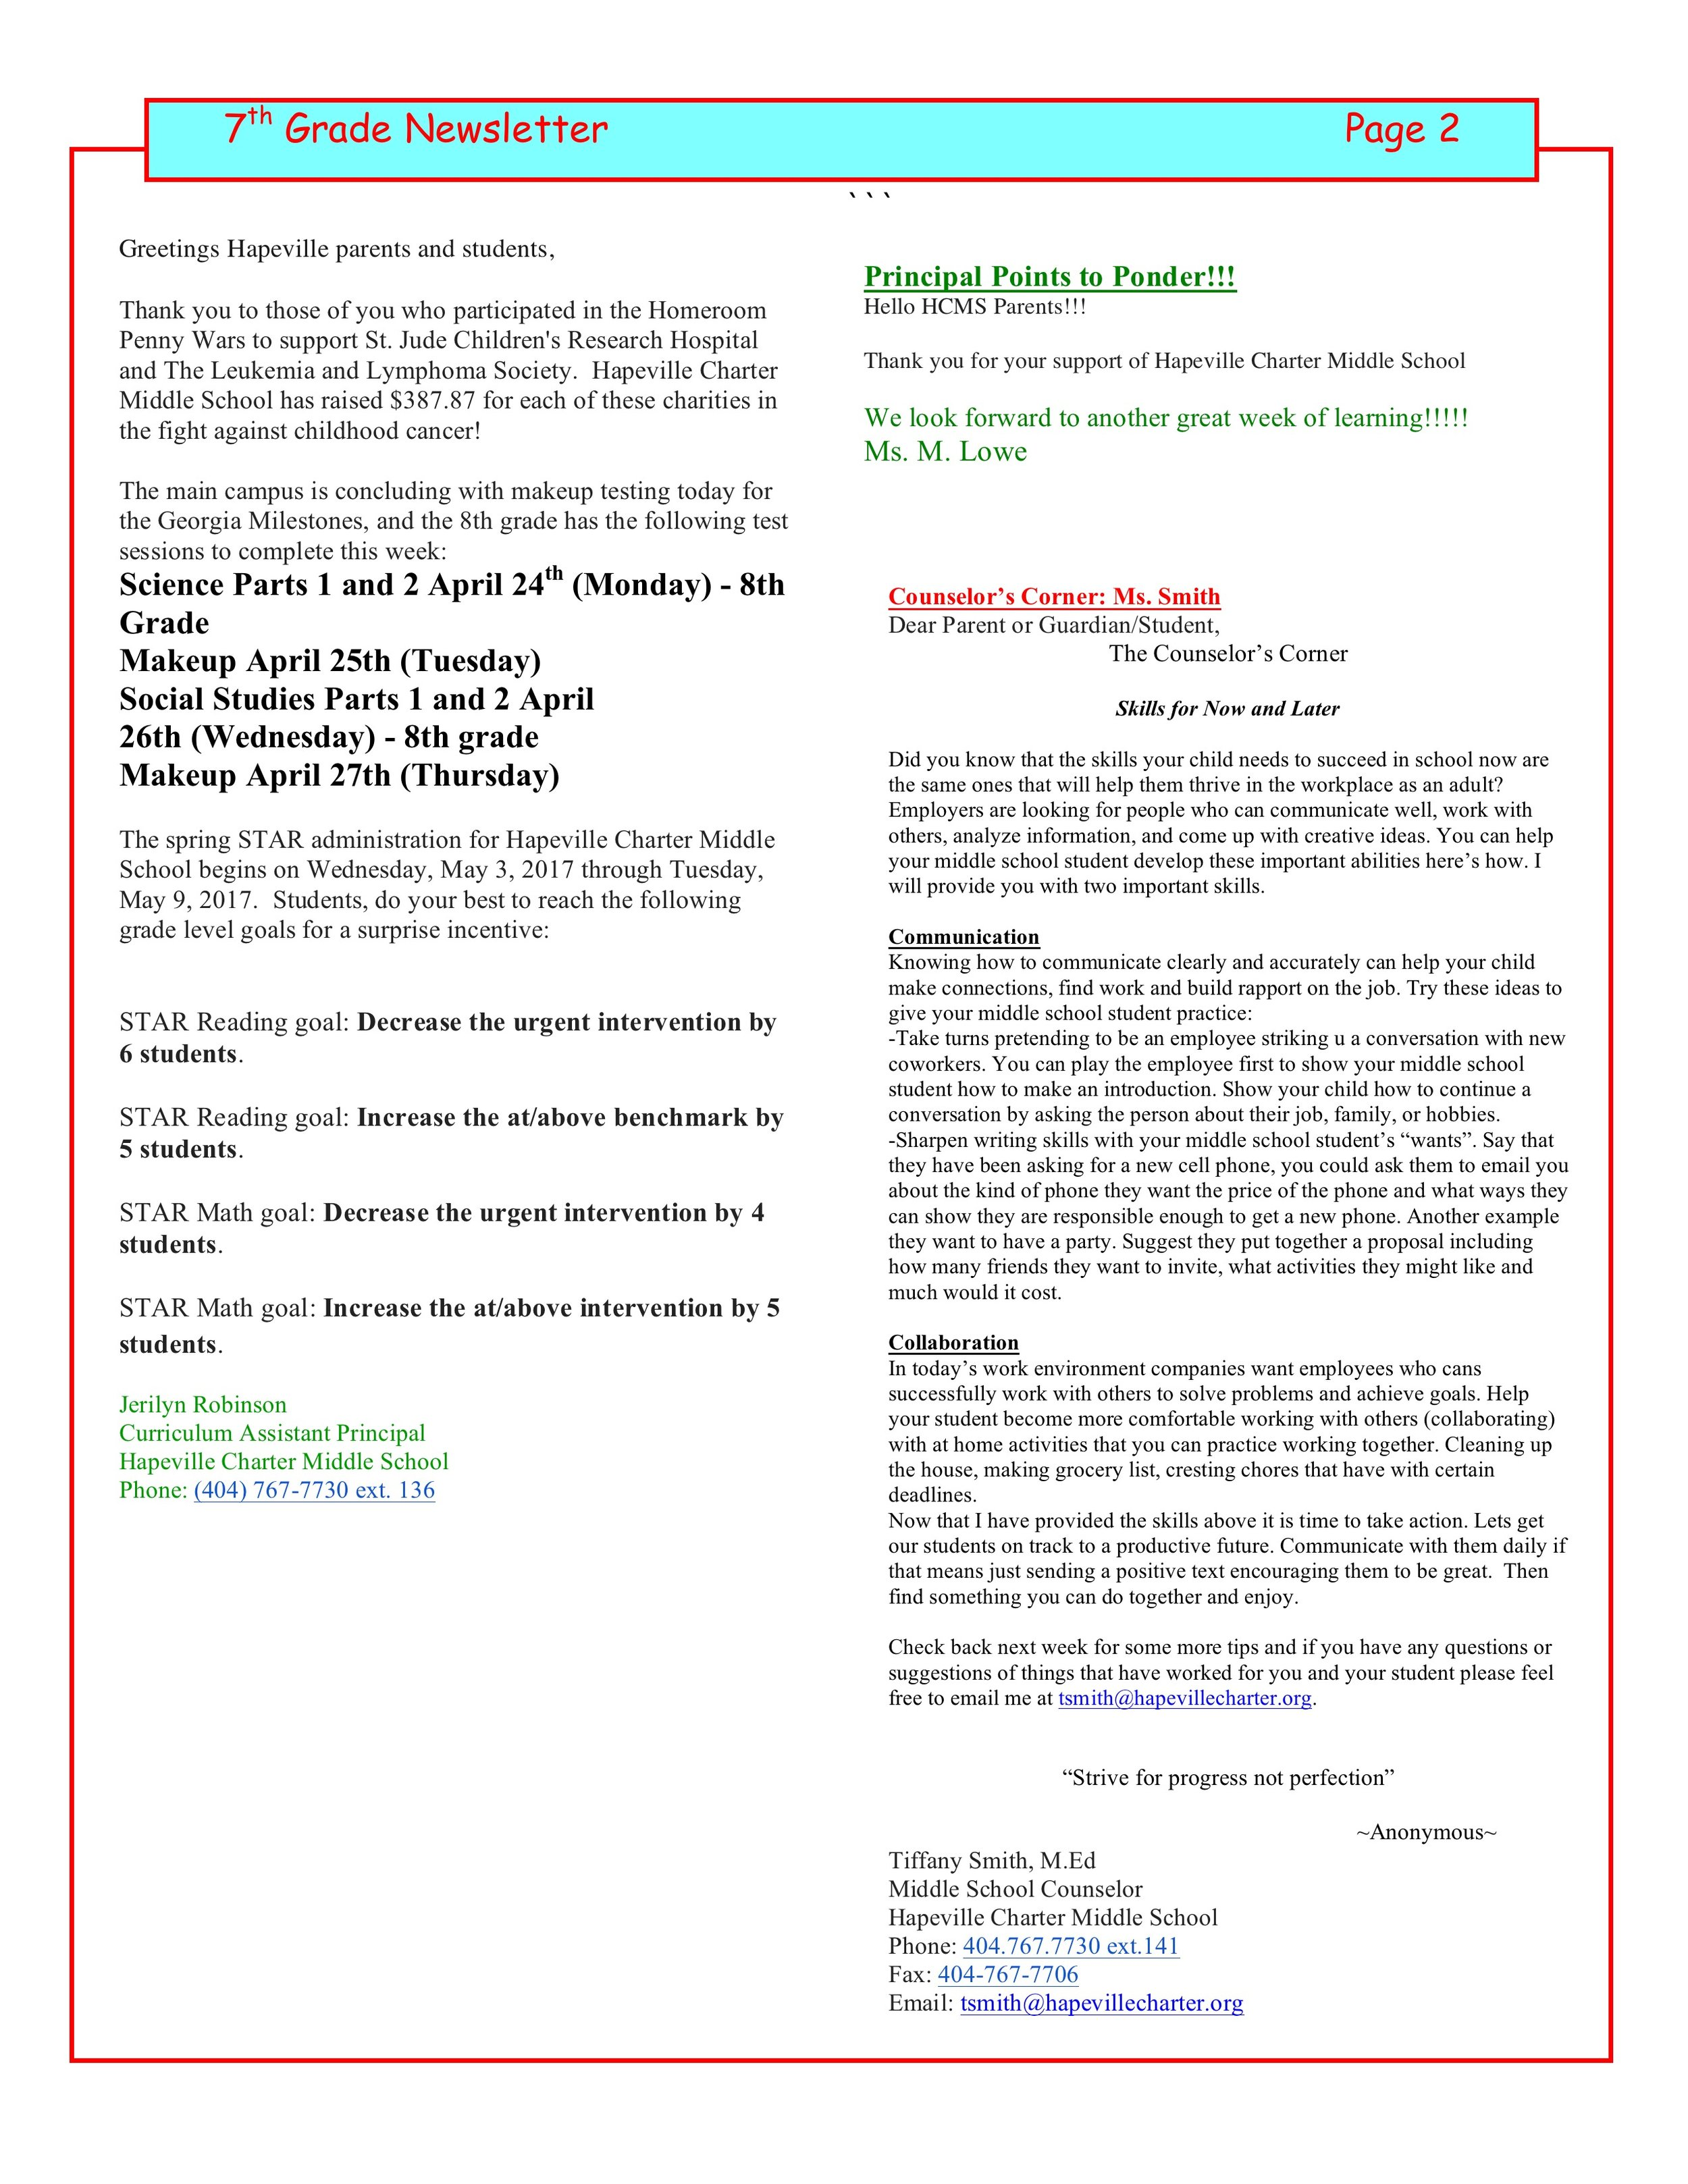 Newsletter Image7th Grade Newsletter 4-25-2017 2.jpeg